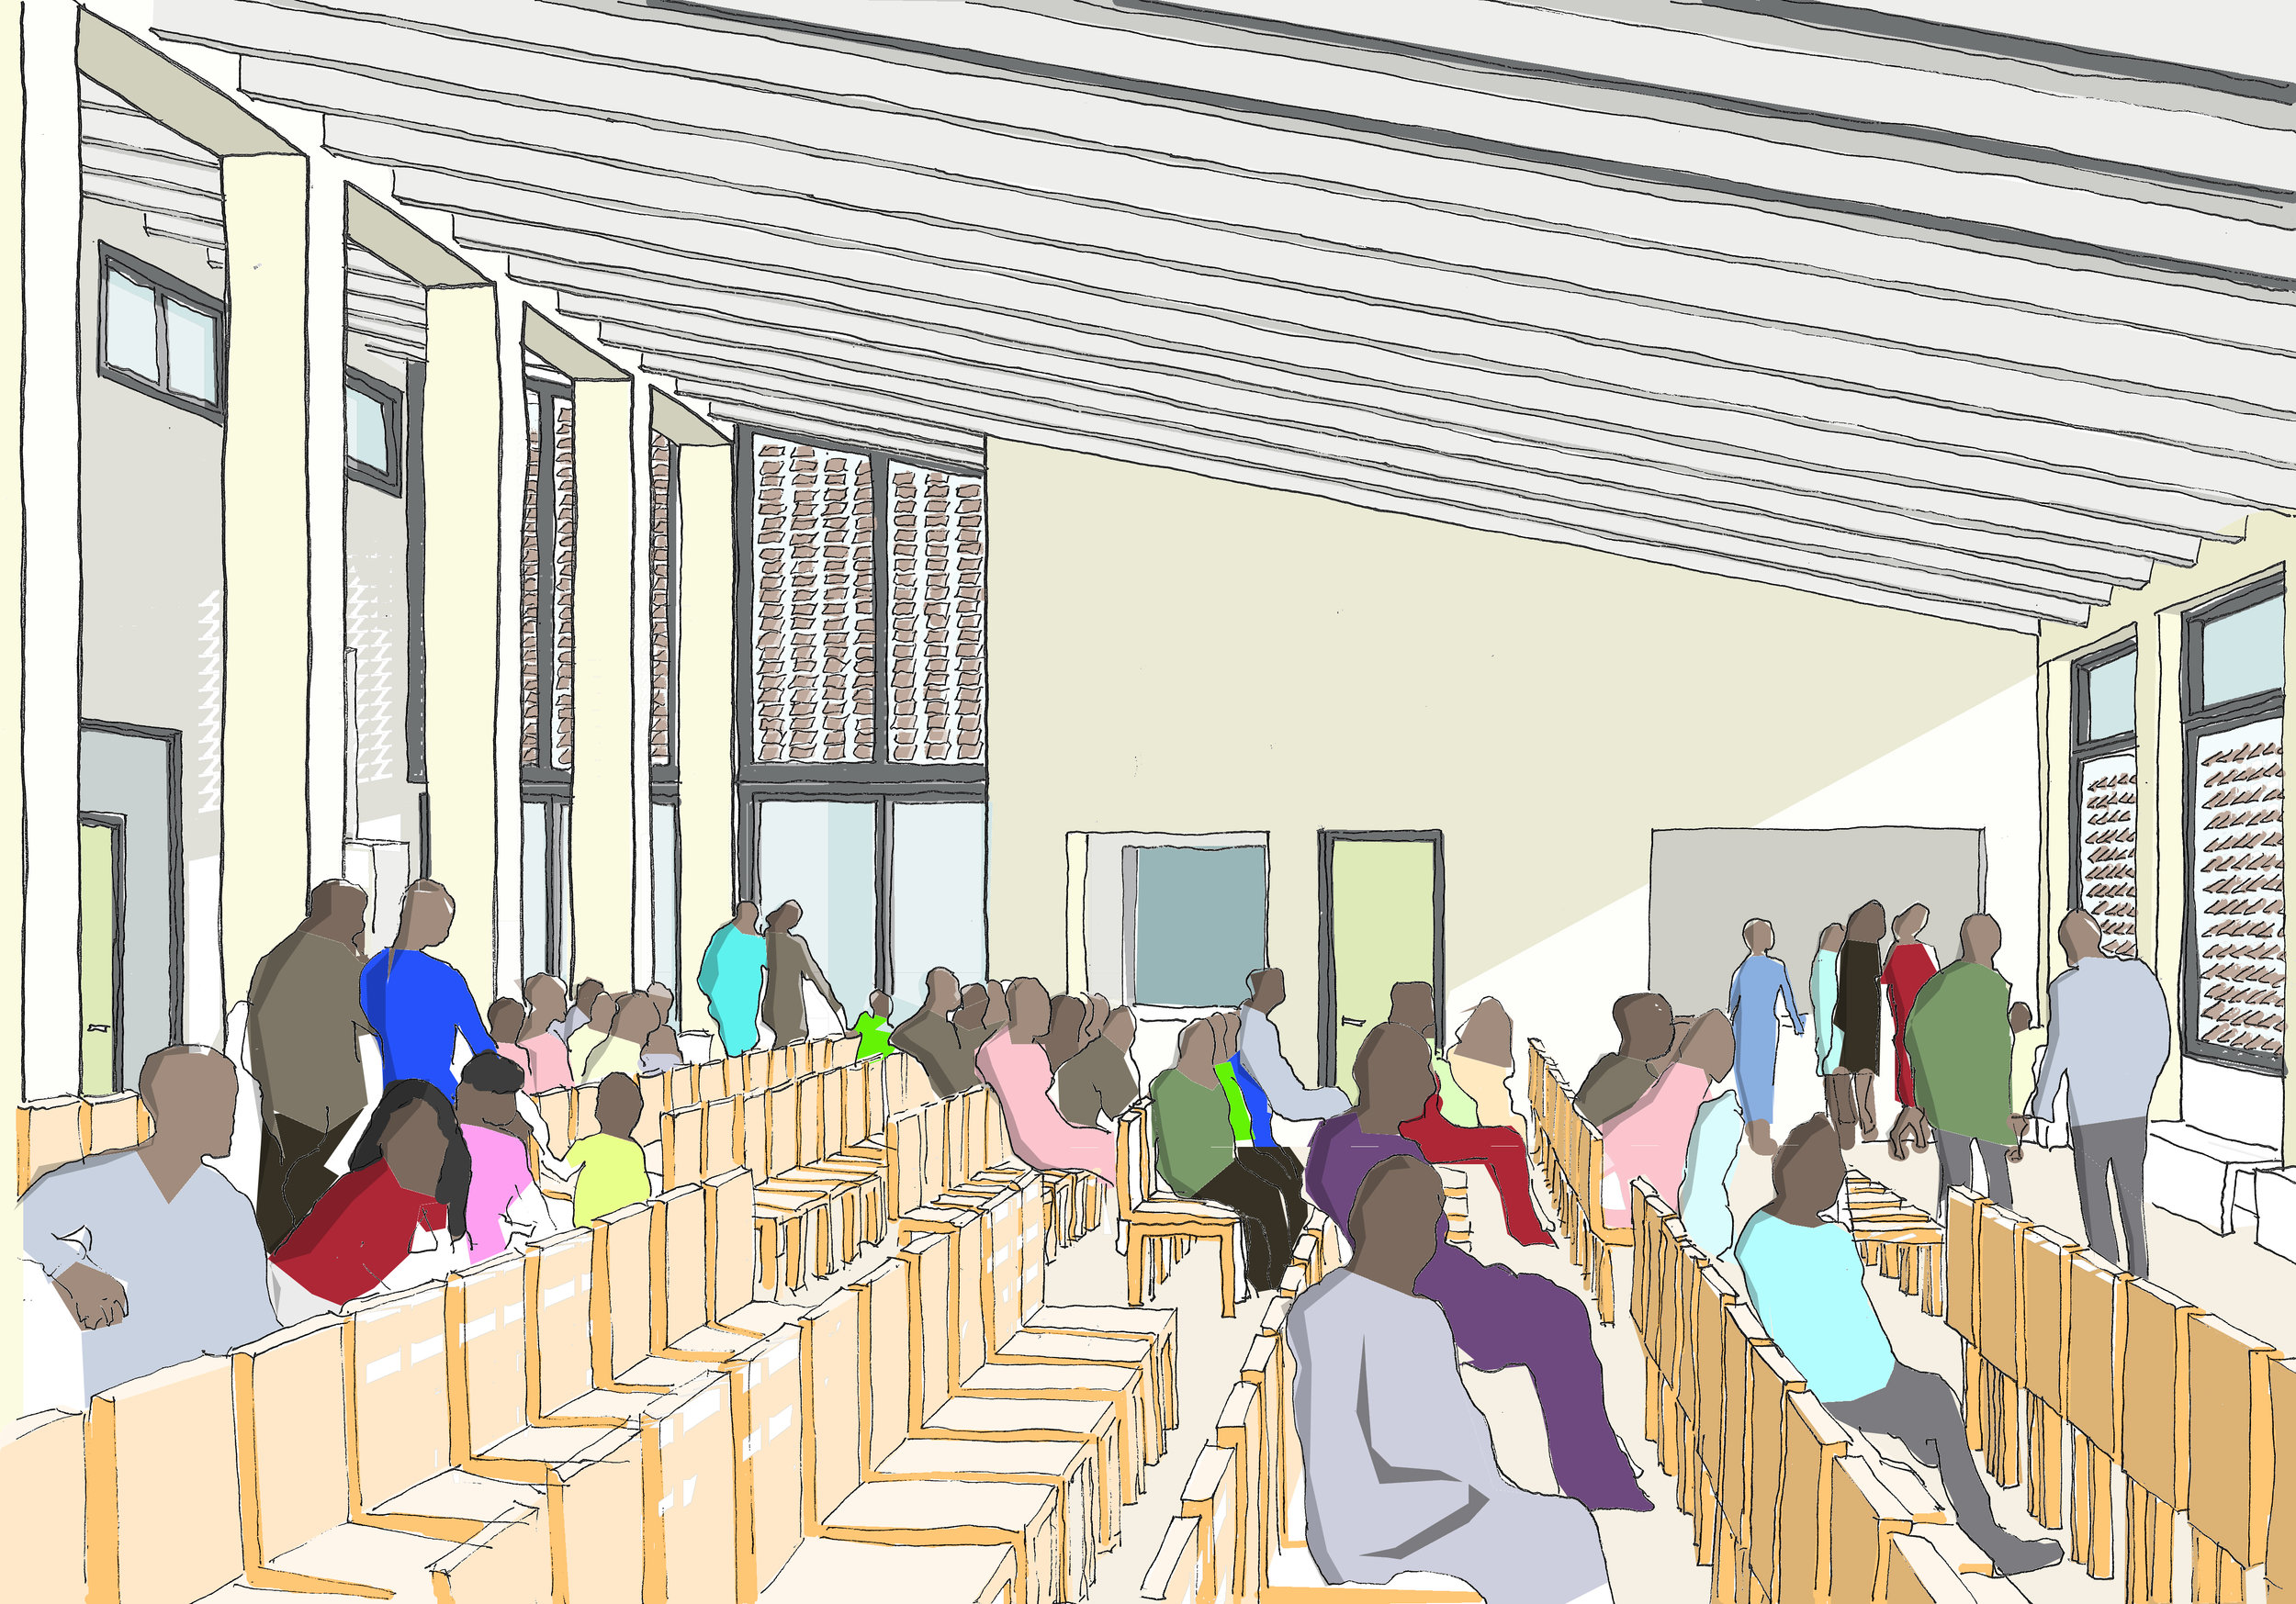 Proposed sketch of outpatients